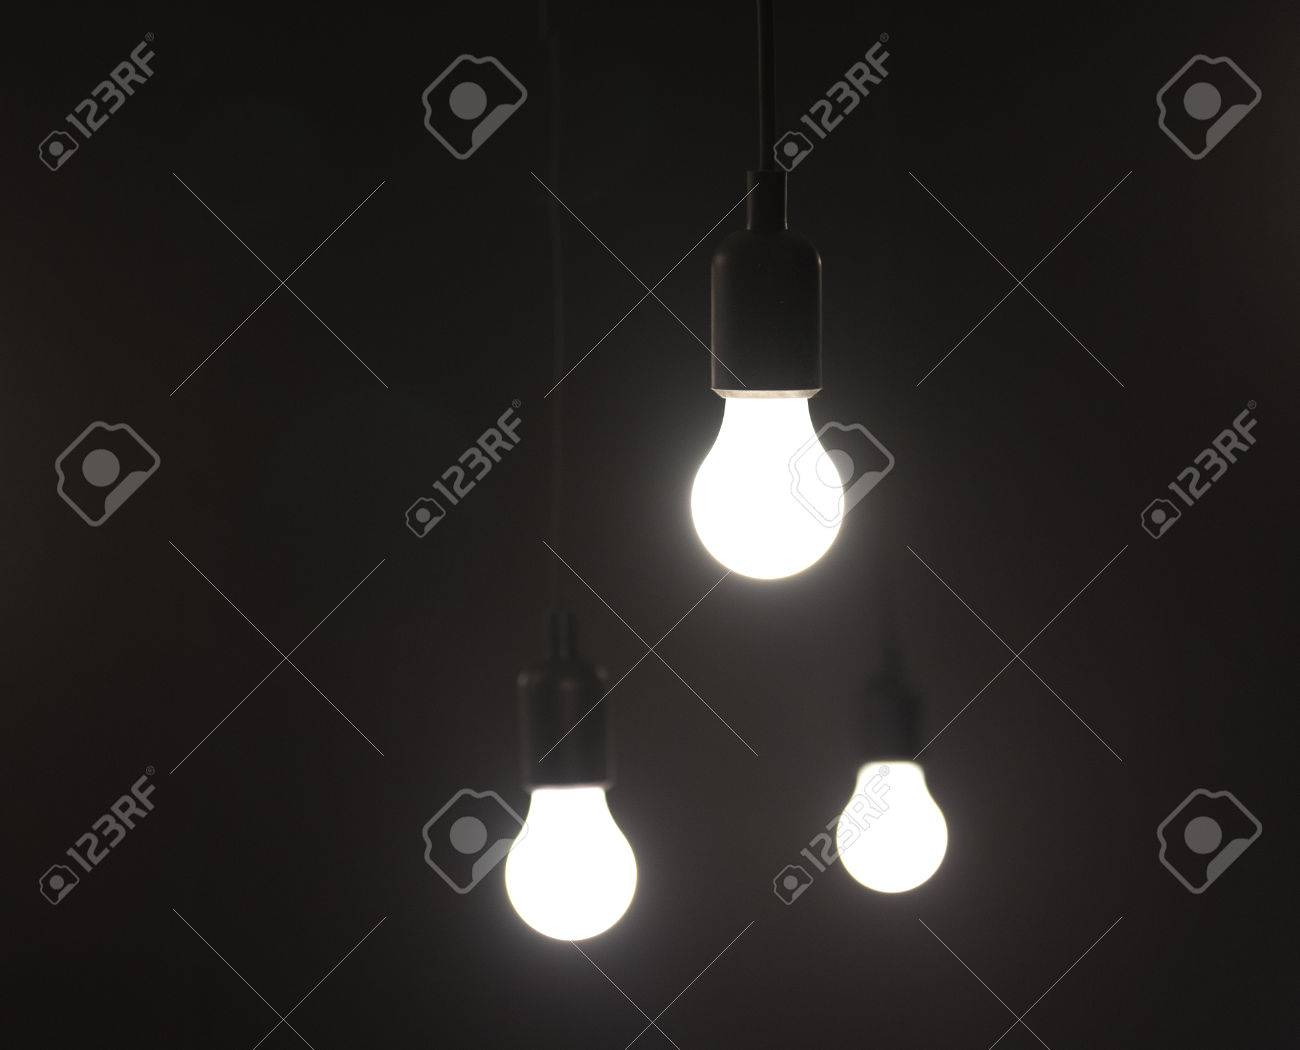 three light bulbs hanging with plain simple background stock photo